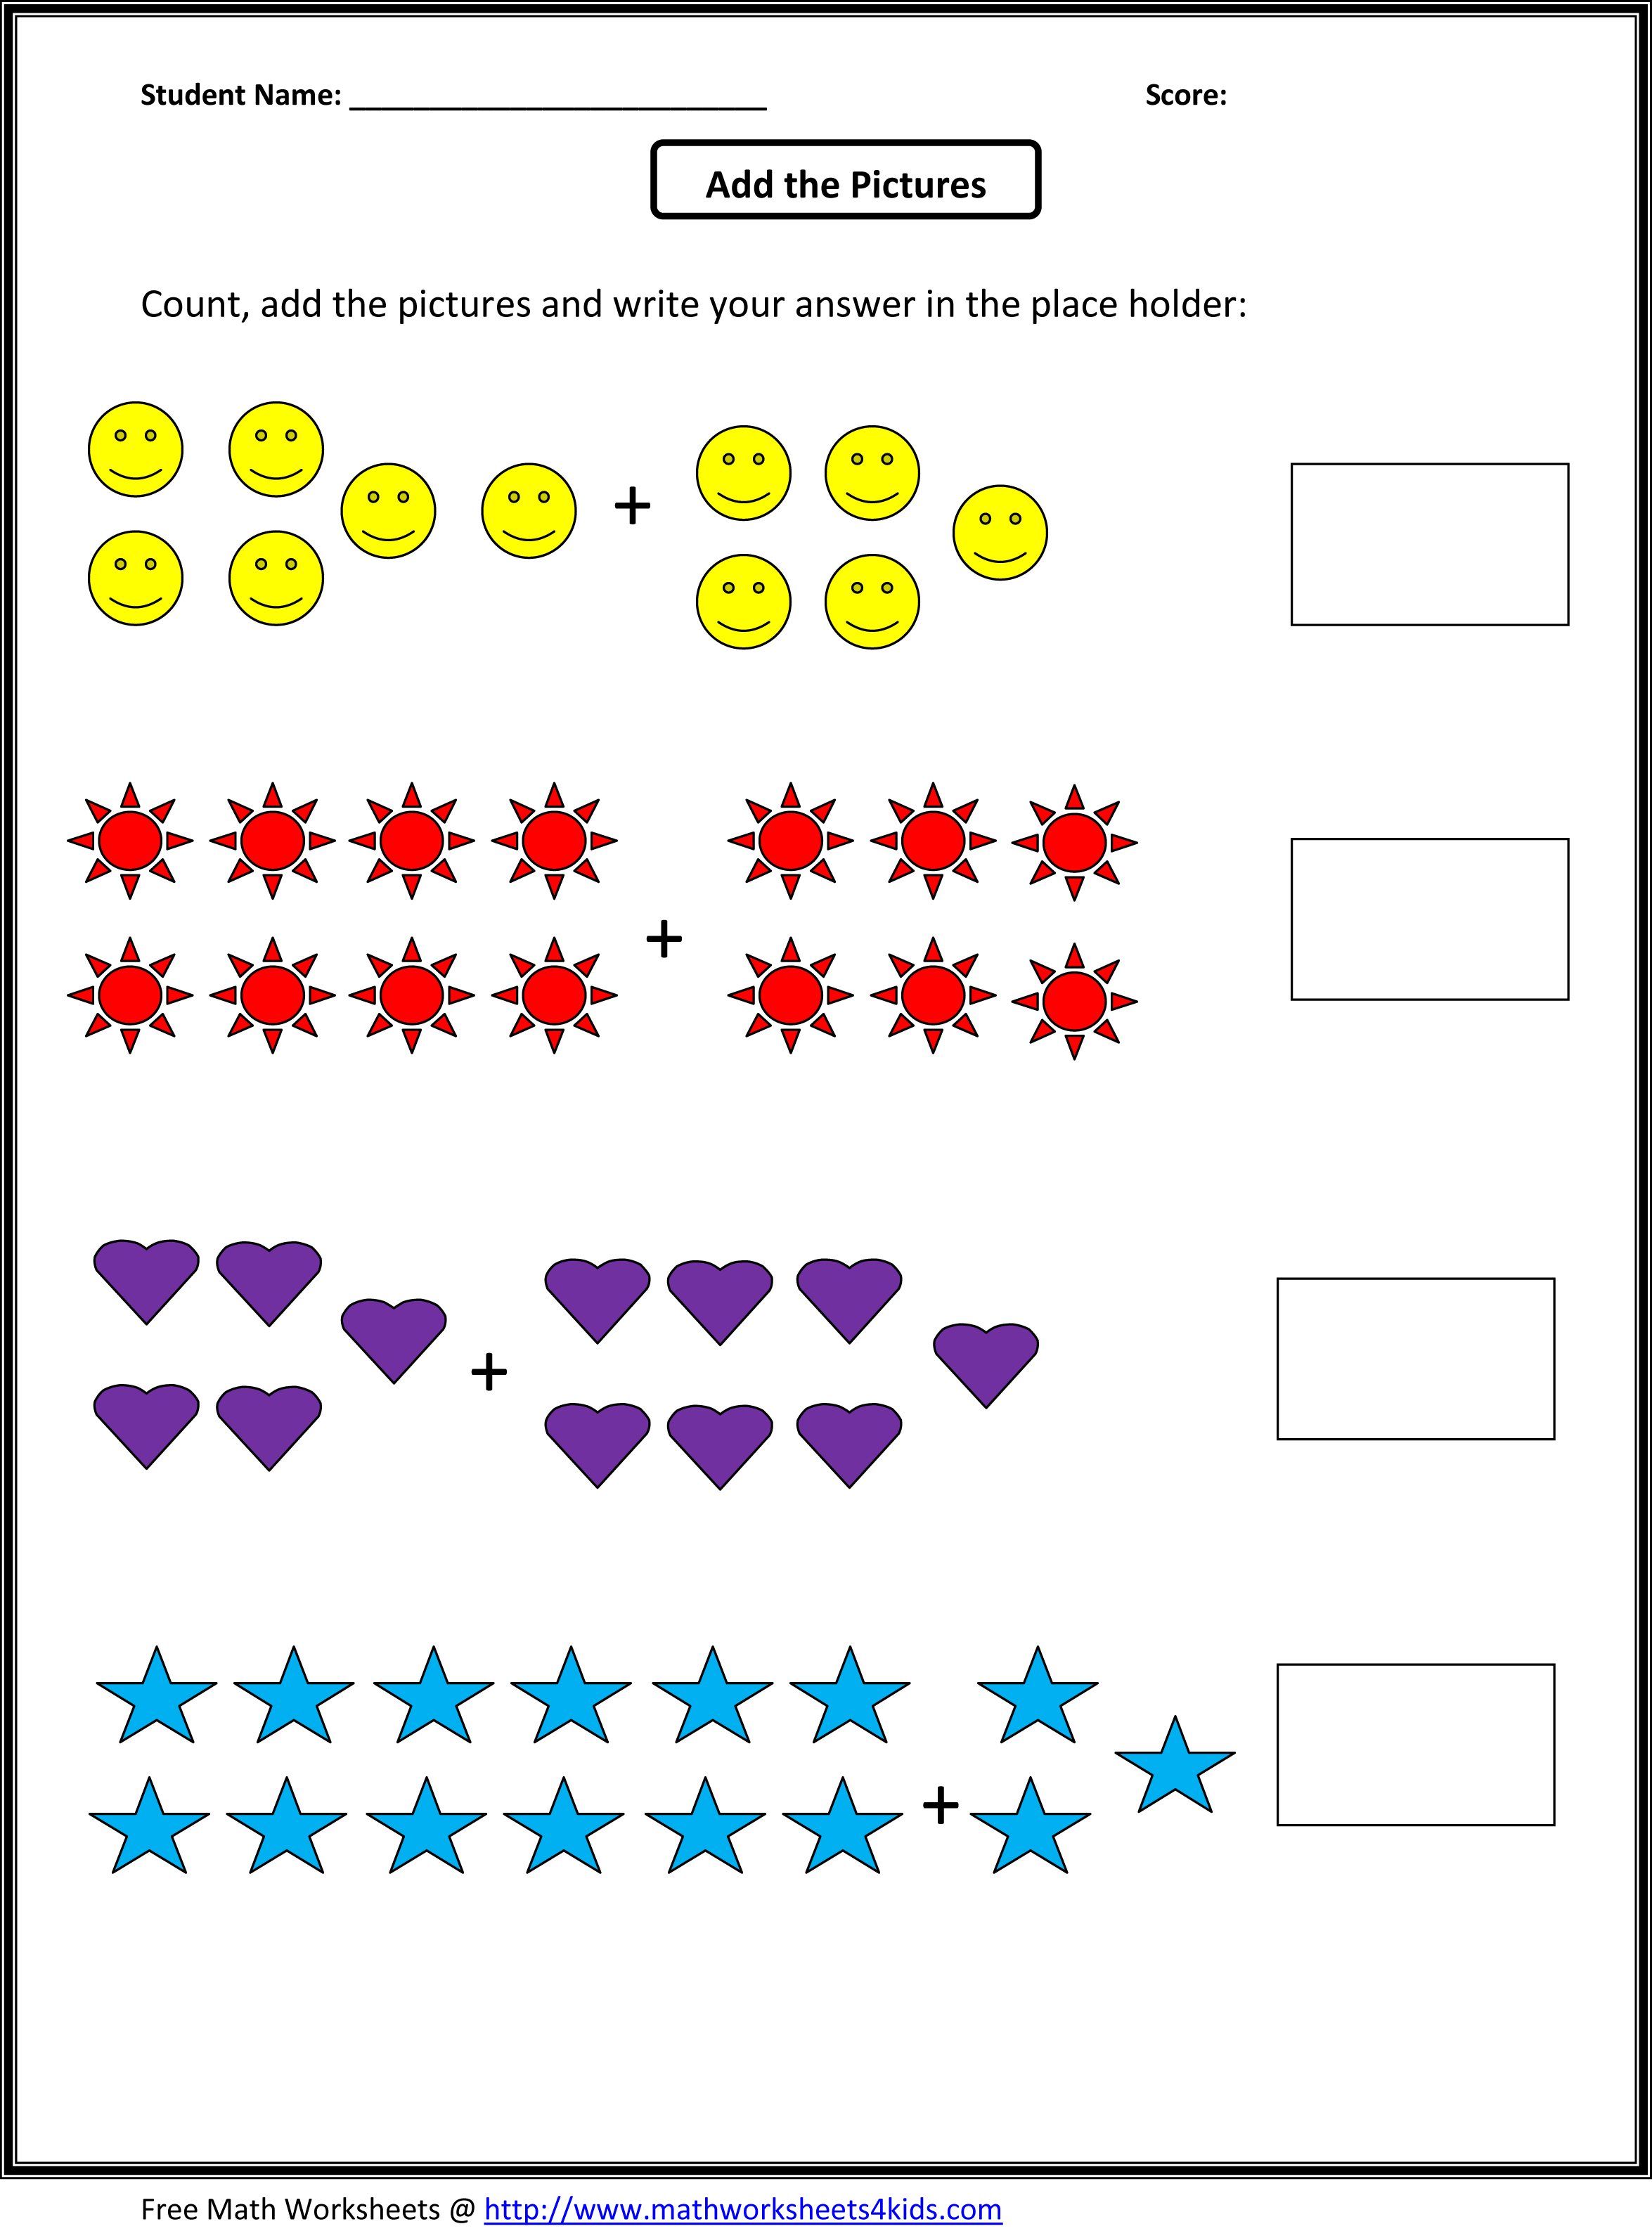 Worksheets - Mysterious Maths